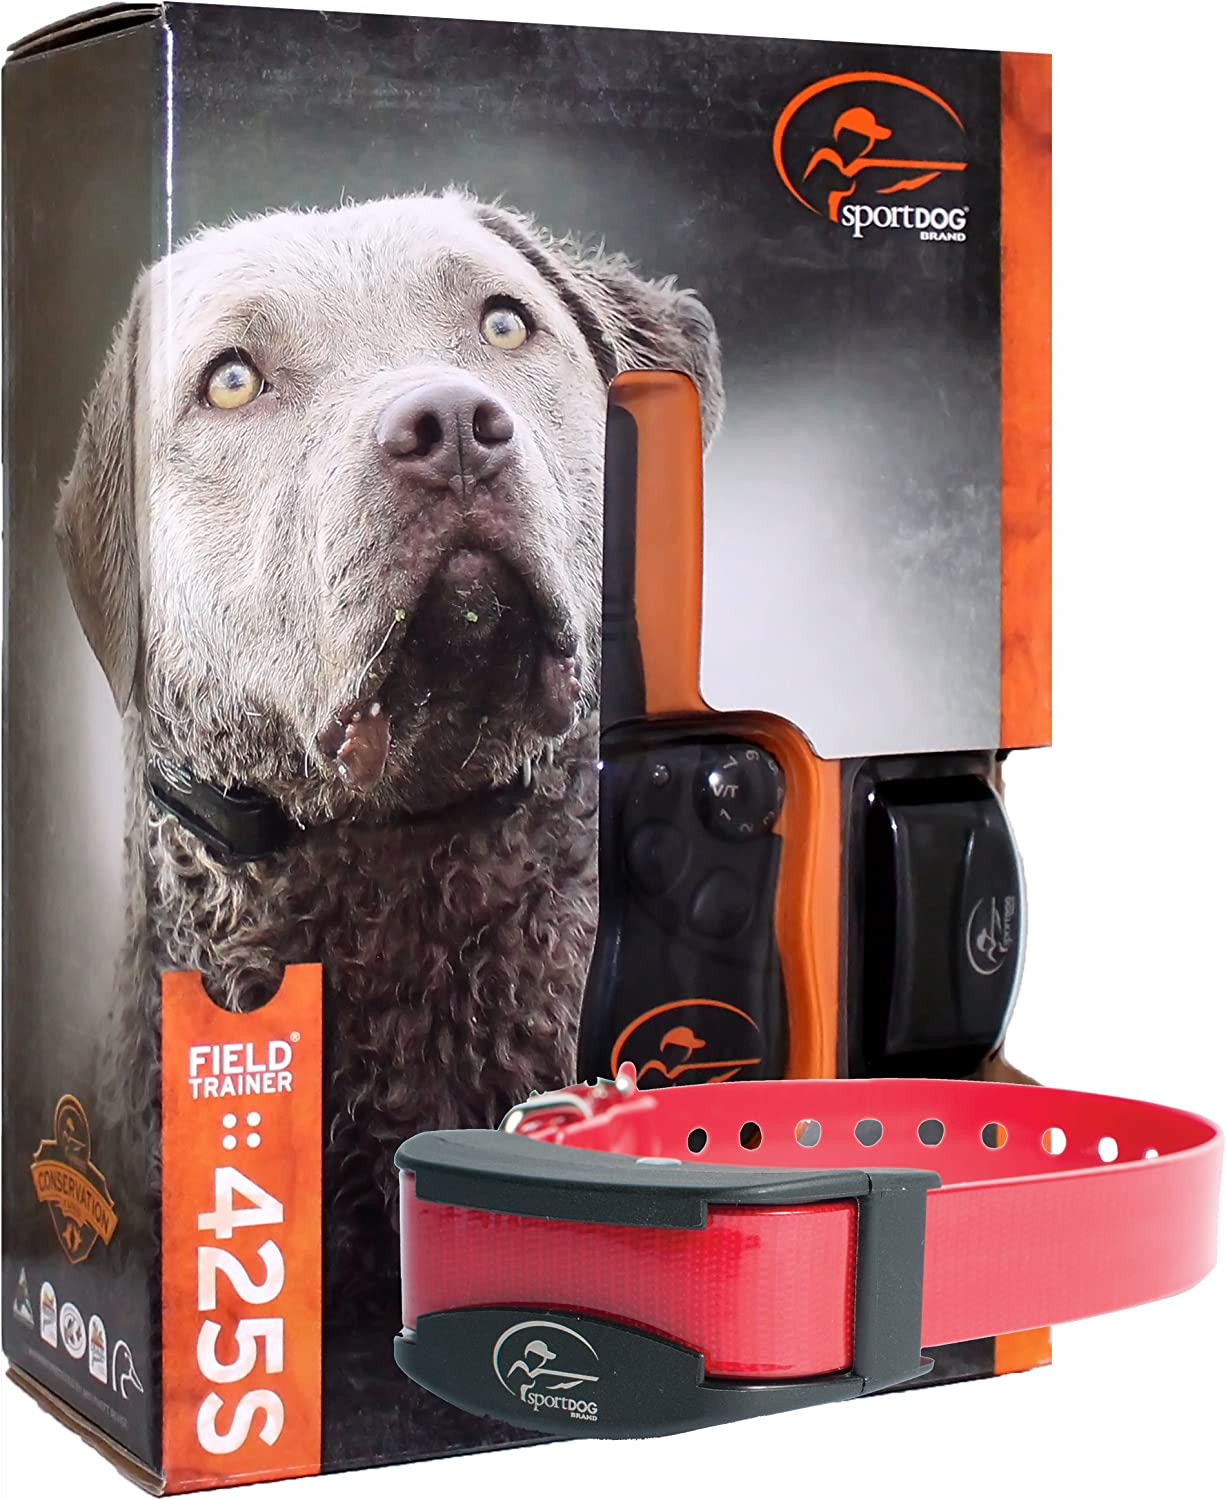 Bundle of 2 items – SportDog – SD-425S – SDR-AS – Two Dog Field Trainer for Large or Stubborn Dog Waterproof Shock Training Collar